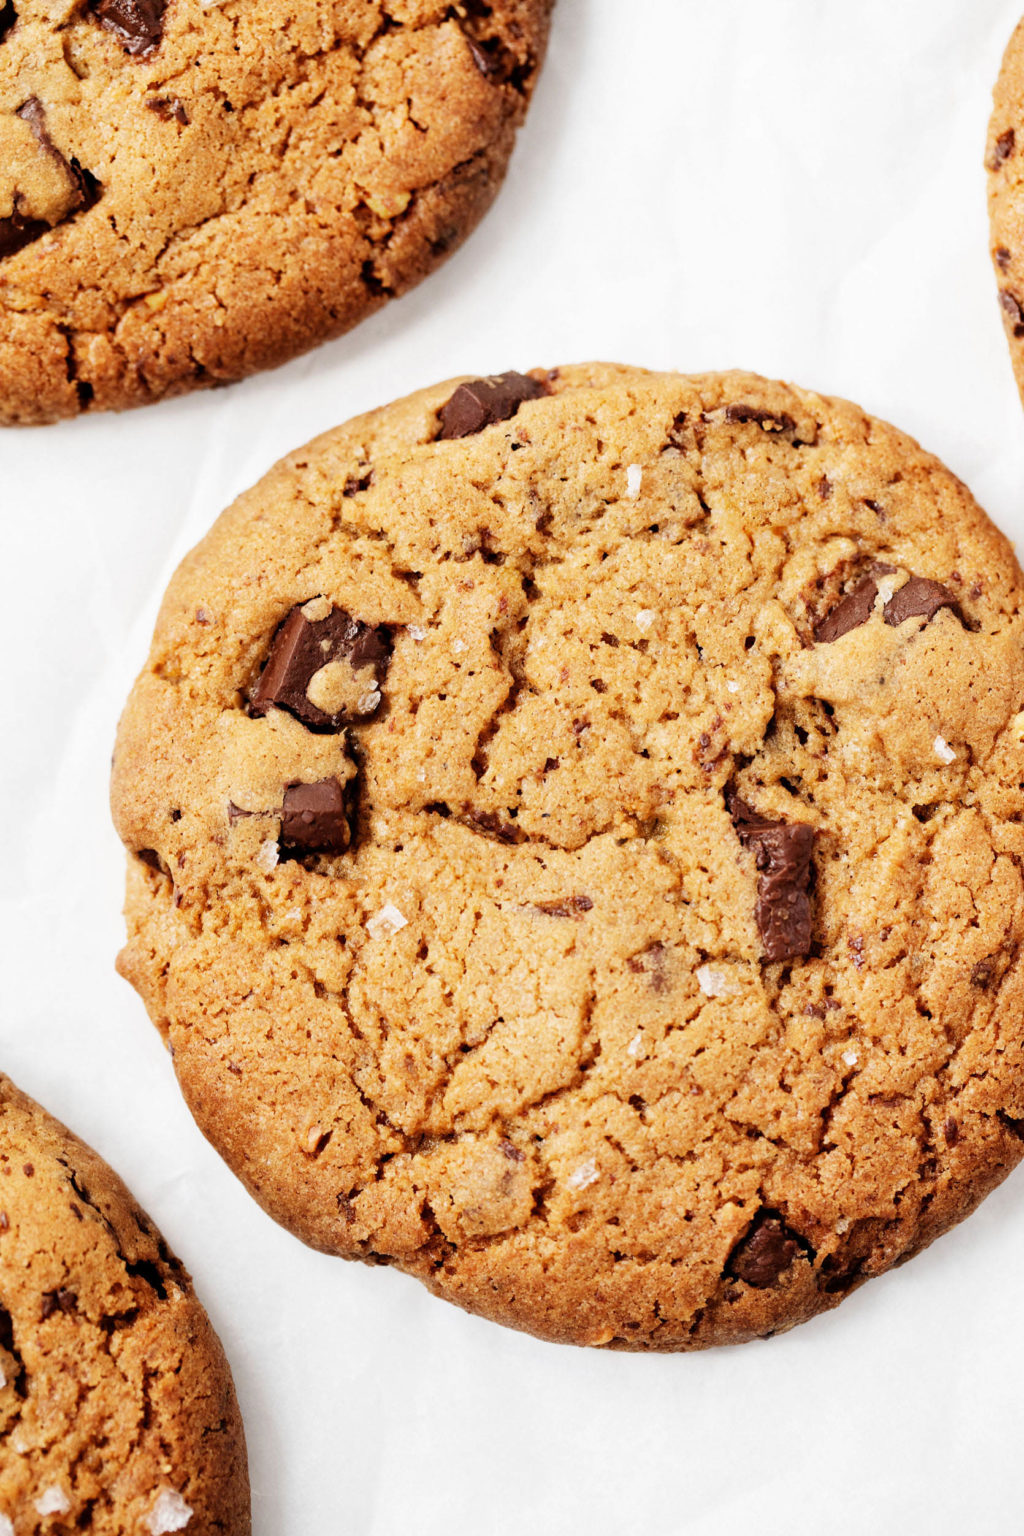 A close up, overhead photograph of vegan chocolate chip cookies placed on a white parchment surface.